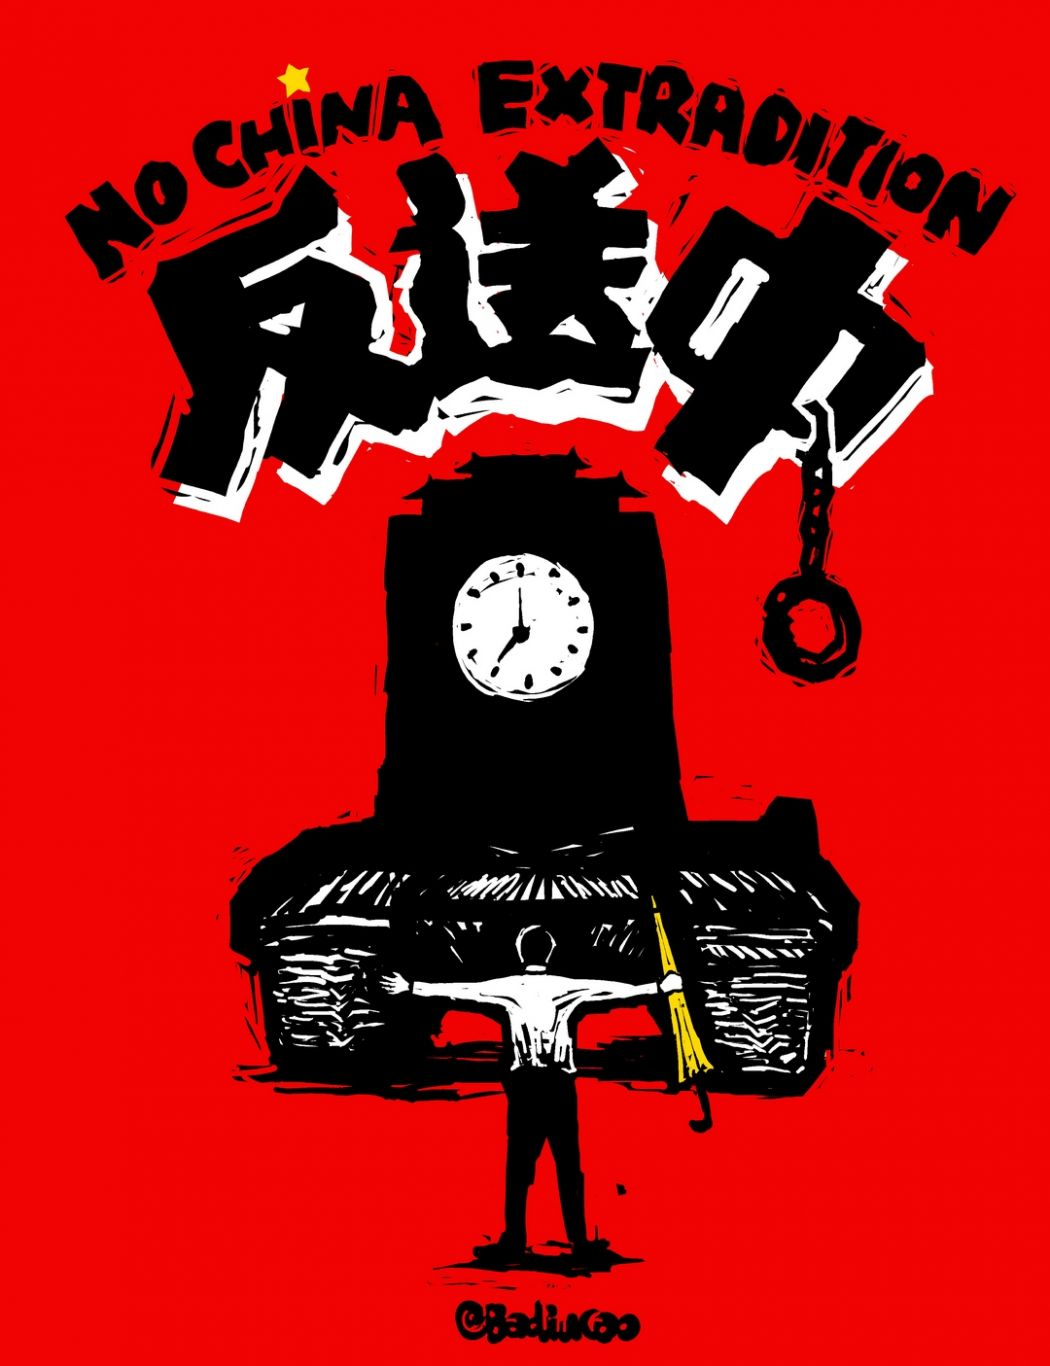 poster of No China Extradition